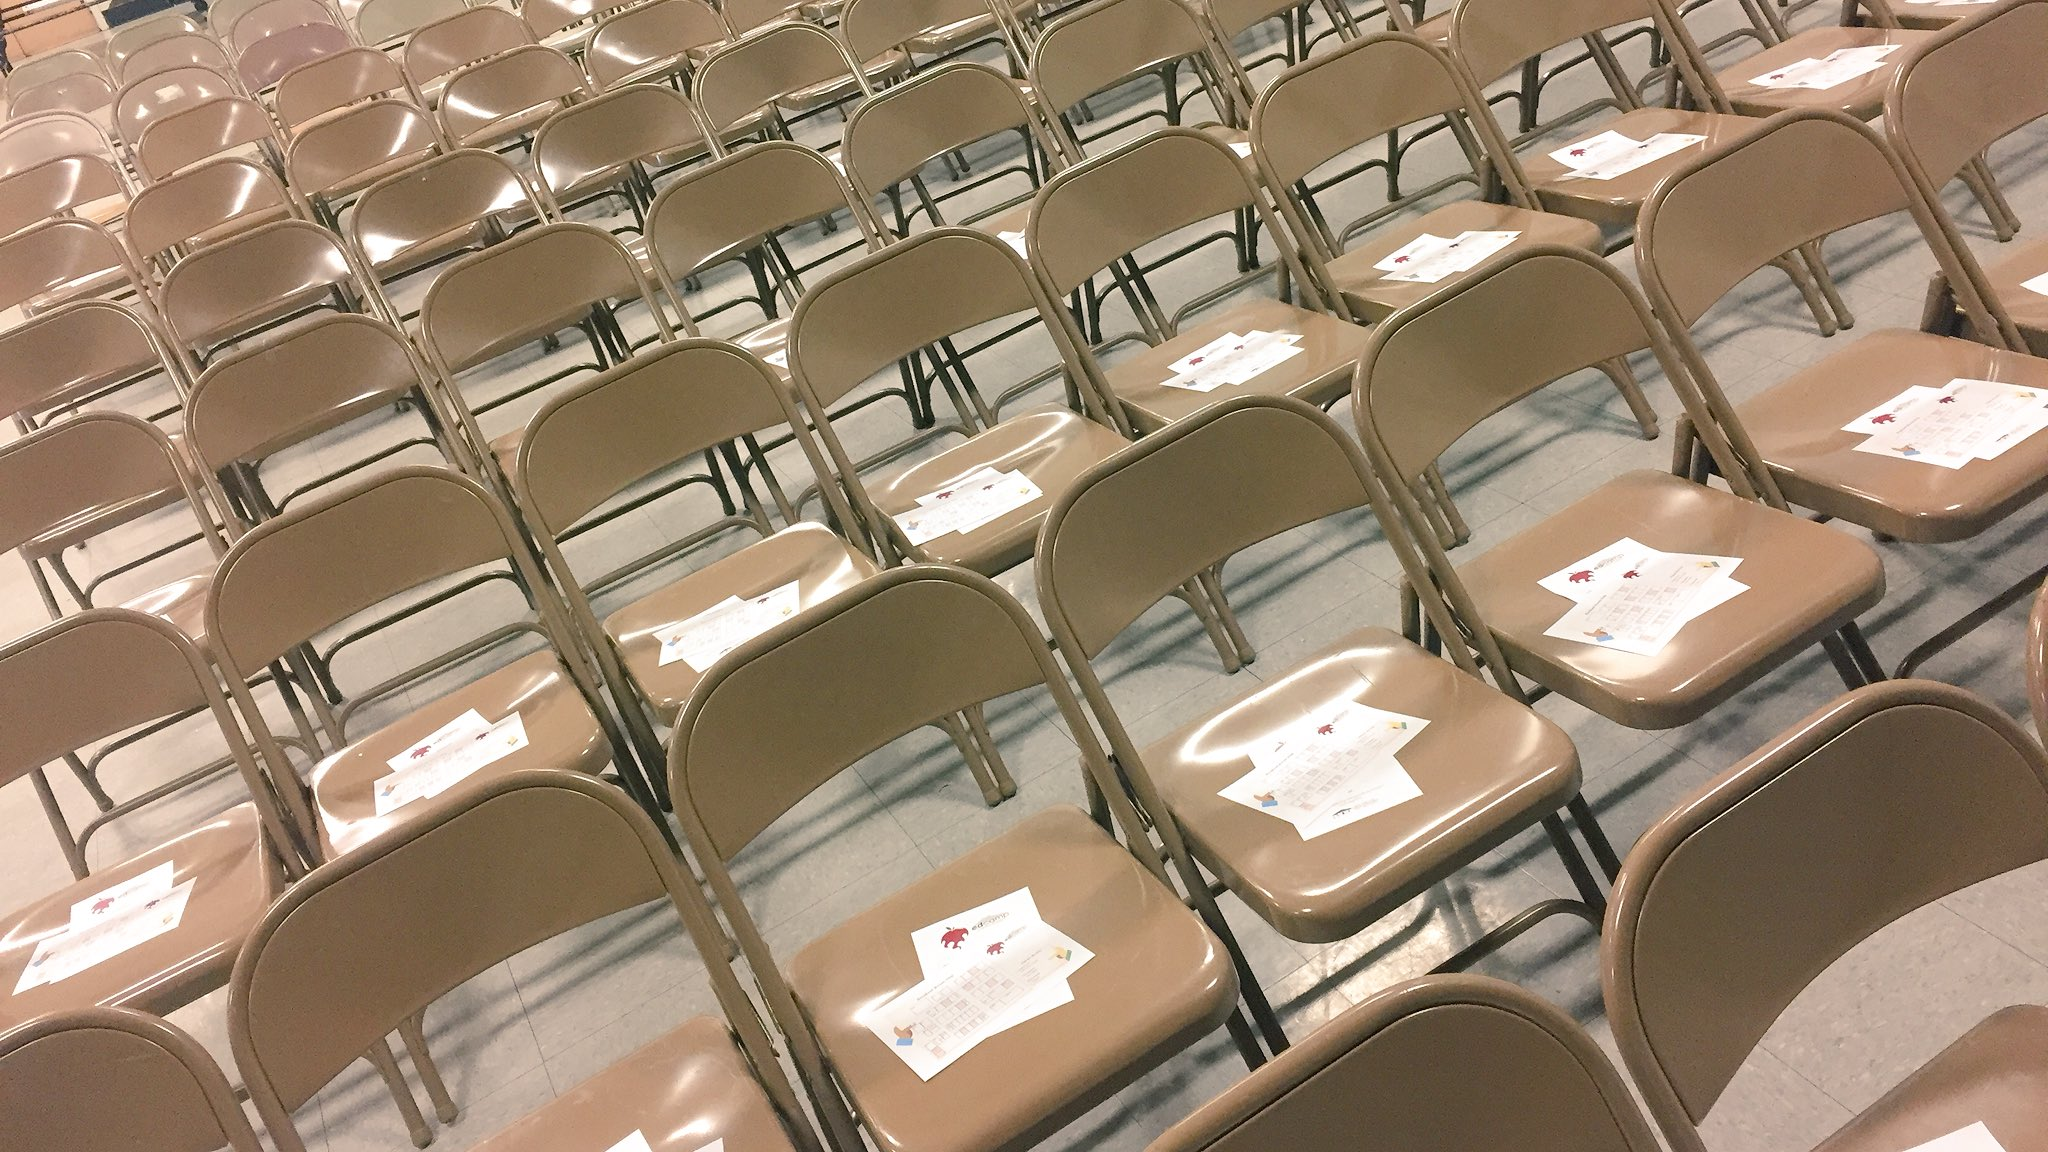 Chairs Are set! Name tags are out! Coffee is coming! Doors open at 730 am tomorrow! Can't wait for #edcampcoco https://t.co/lLzFNAMsXz